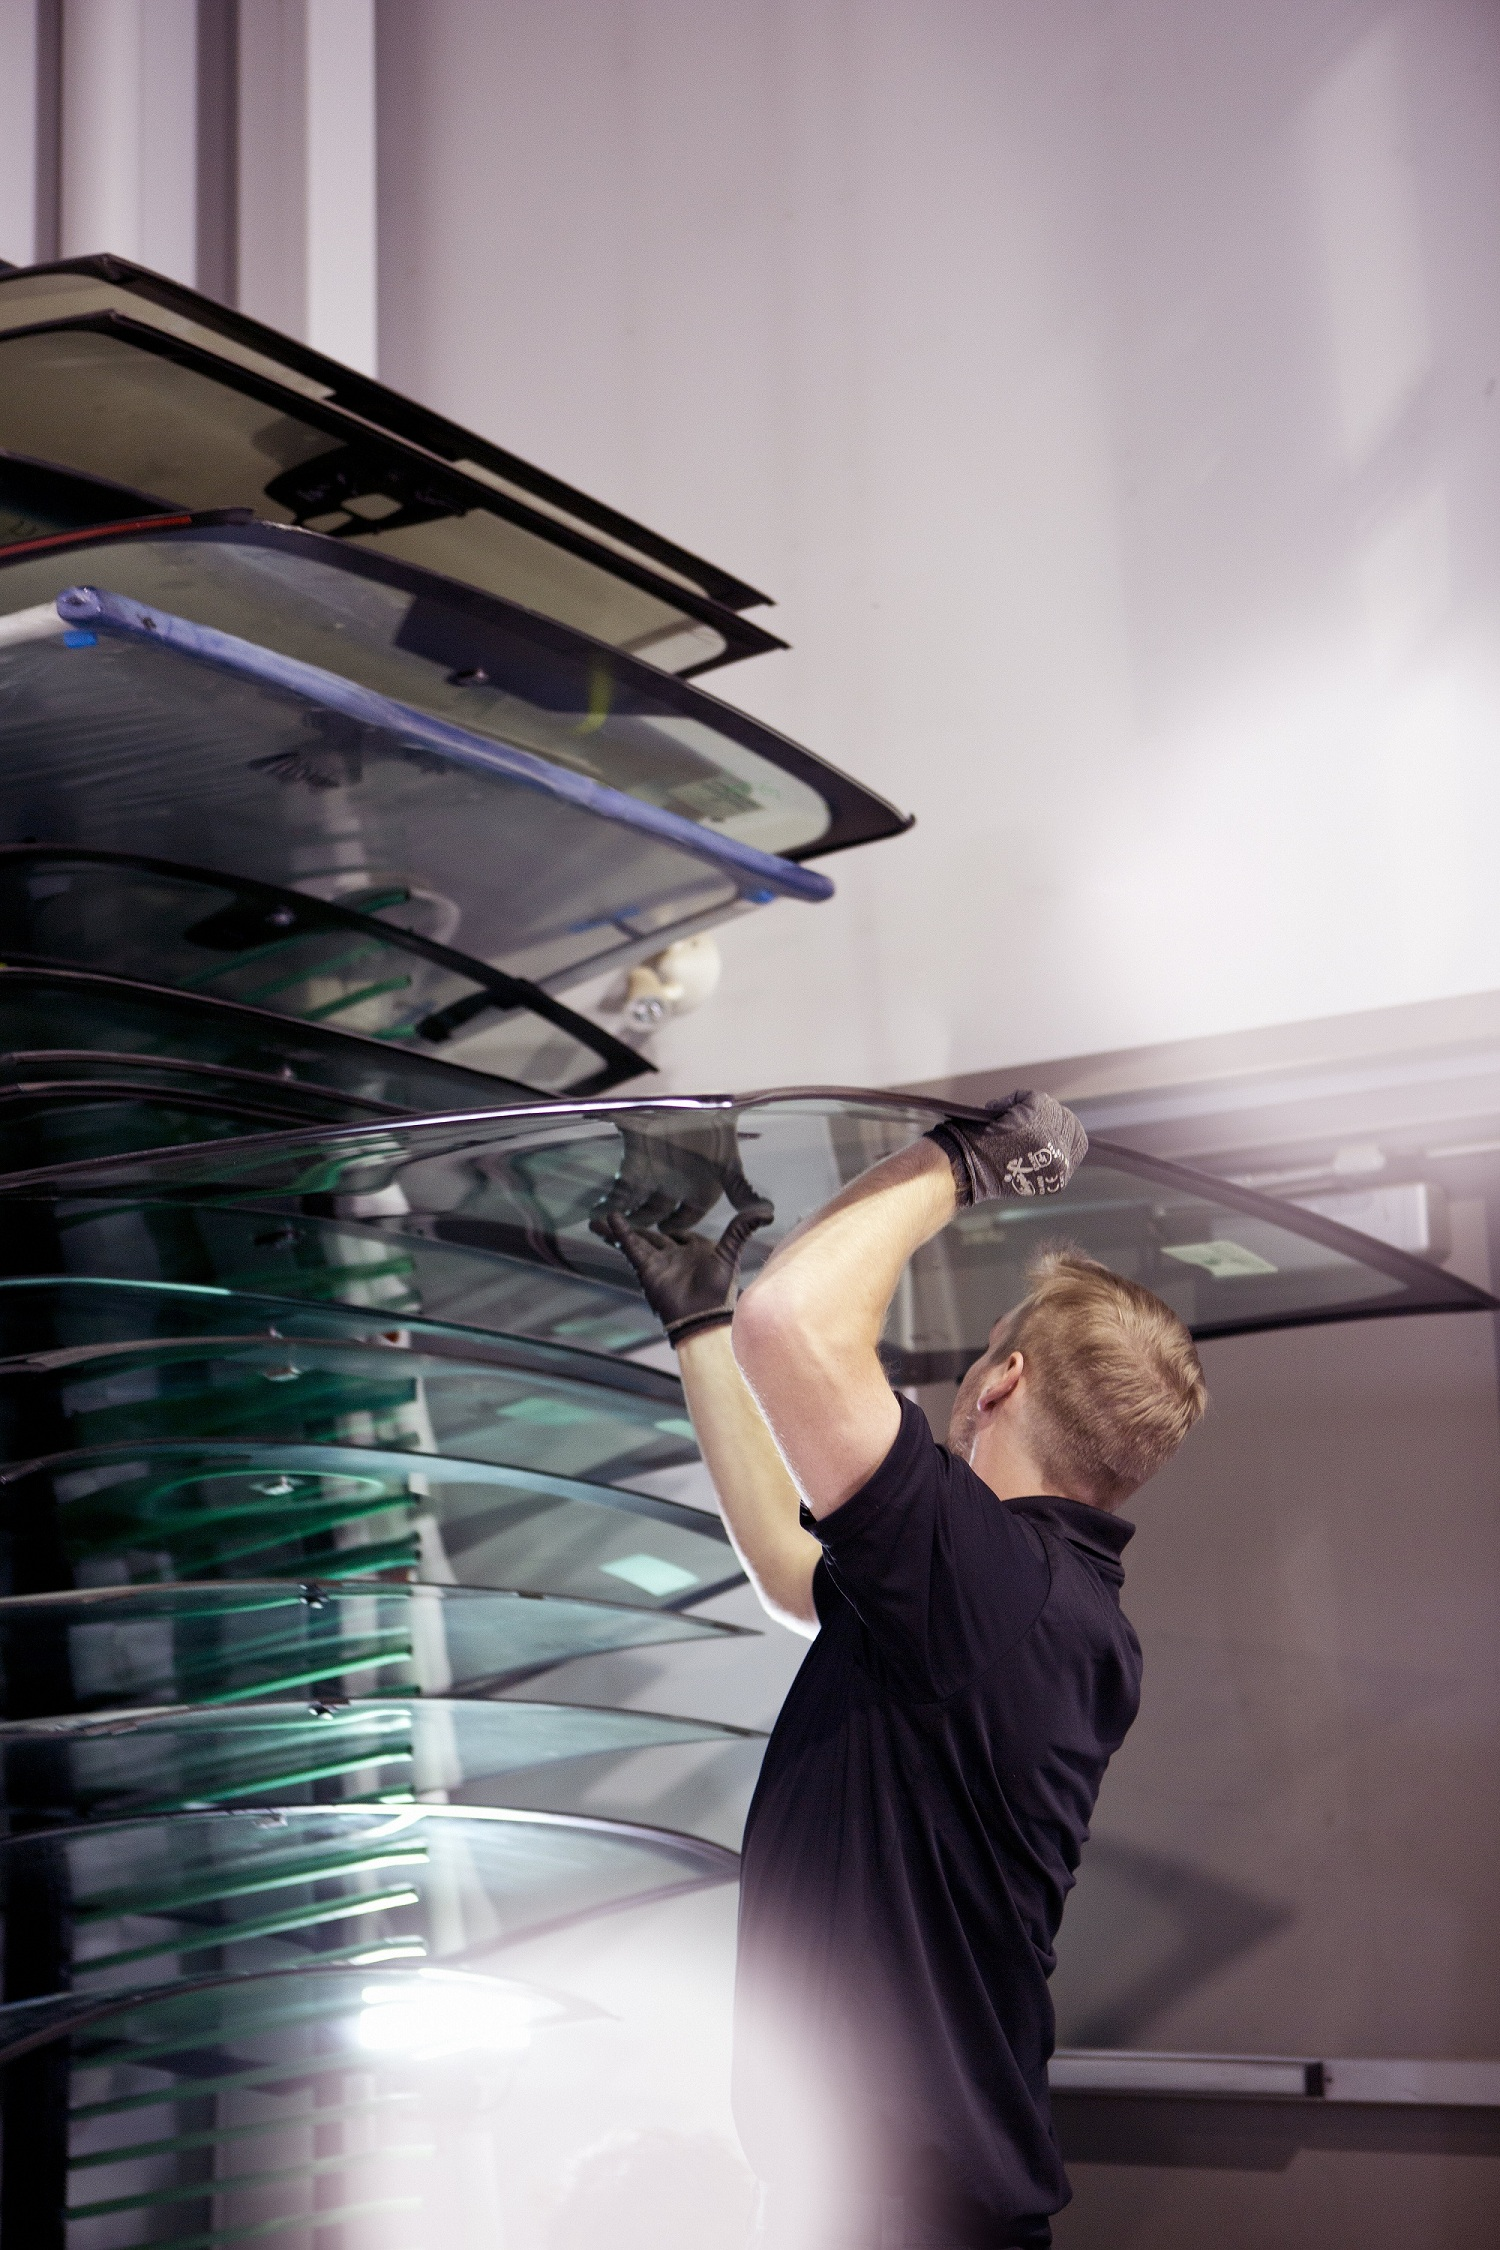 Speedy Glass in Cambridge: A Speedy Glass technician choosing a windshield to replace it